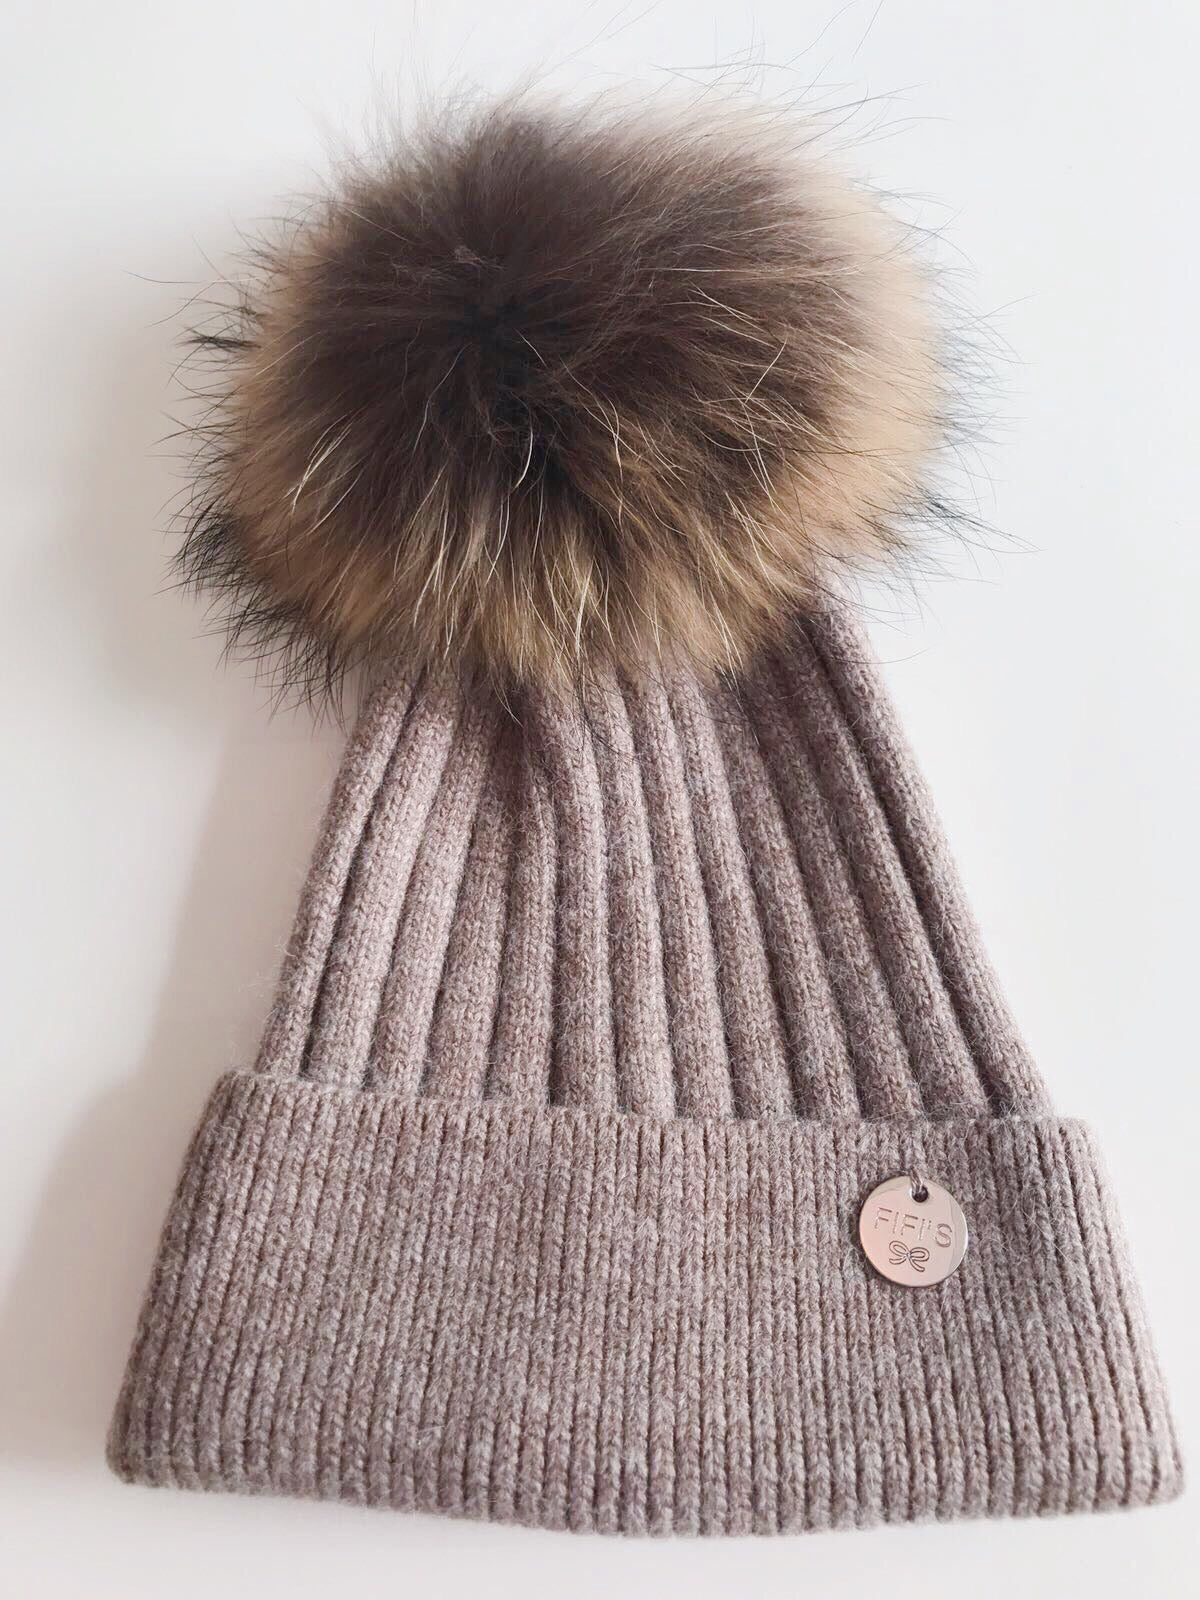 Cashmere single - Brown with natual pom